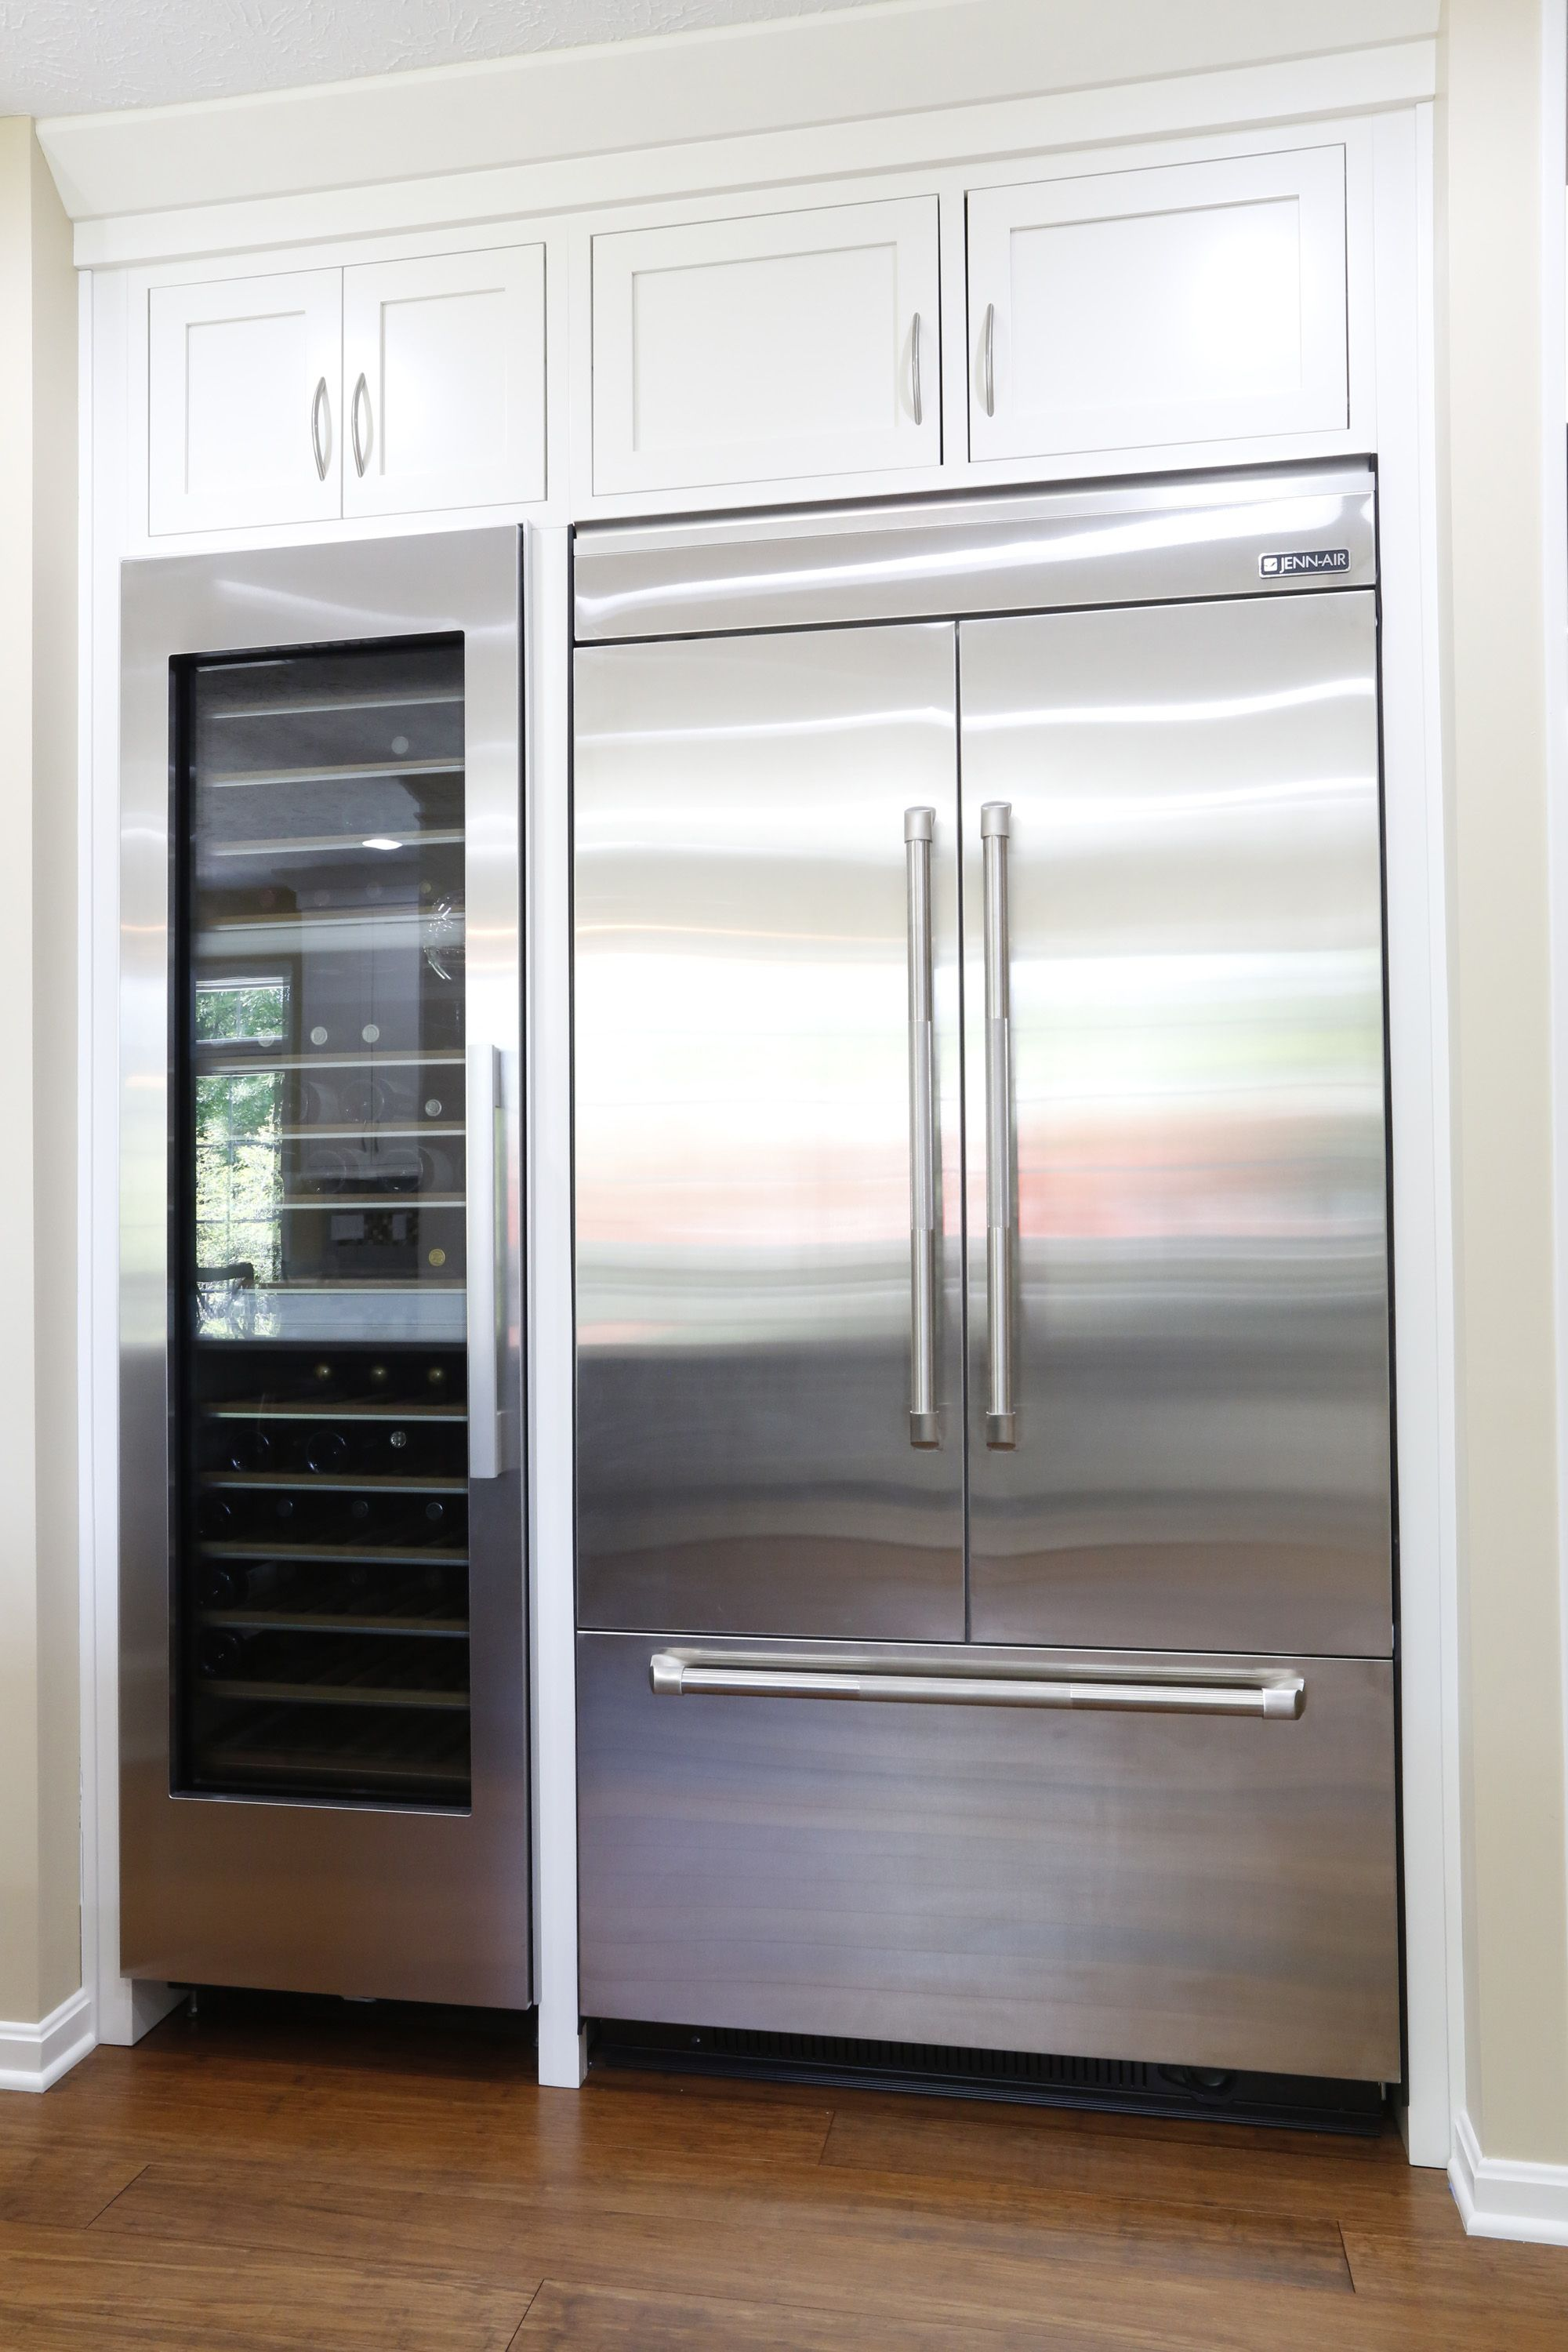 42 Fridge Jenn Air 42 Integrated Built In French Door Refrigerator Next To